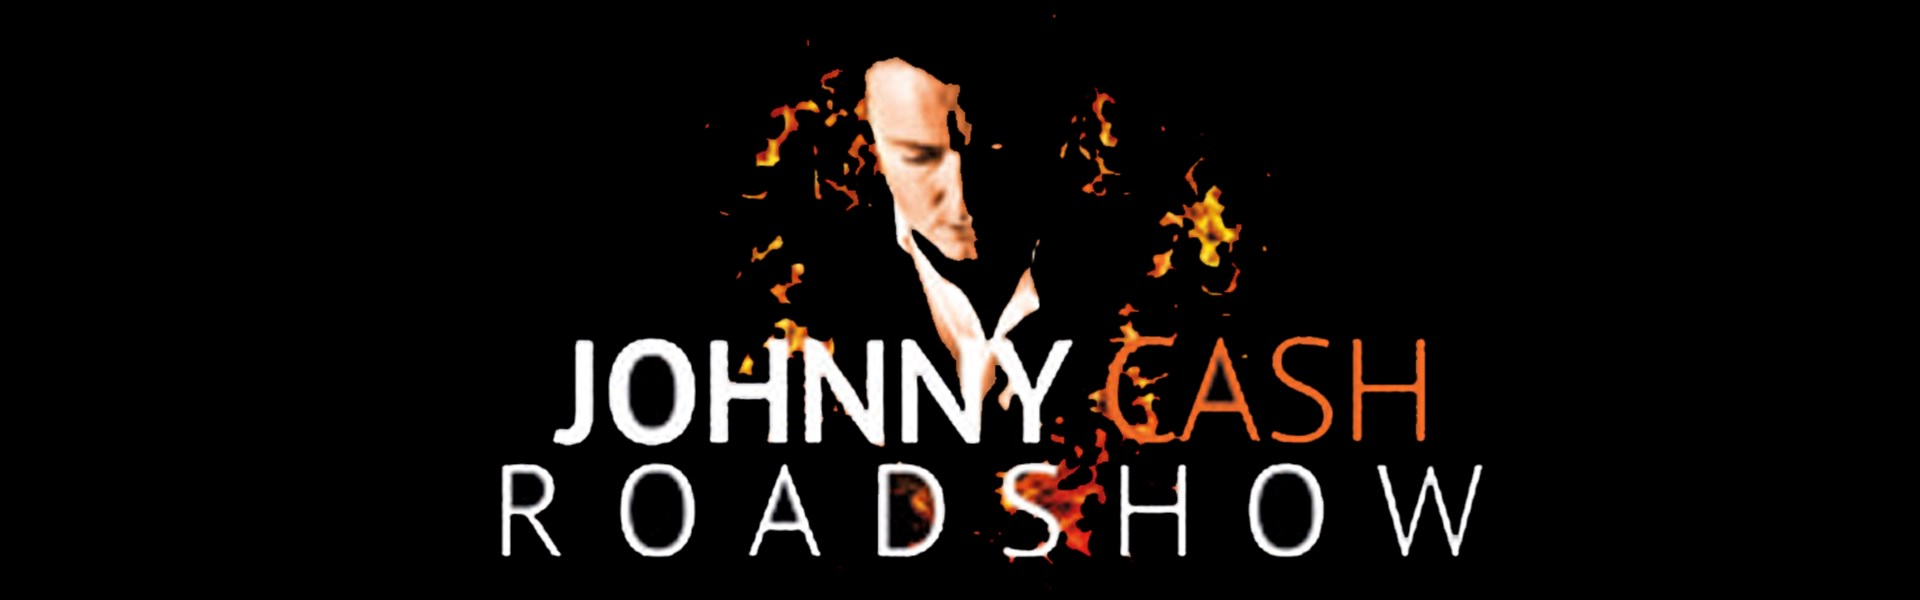 The Johnny Cash Roadshow